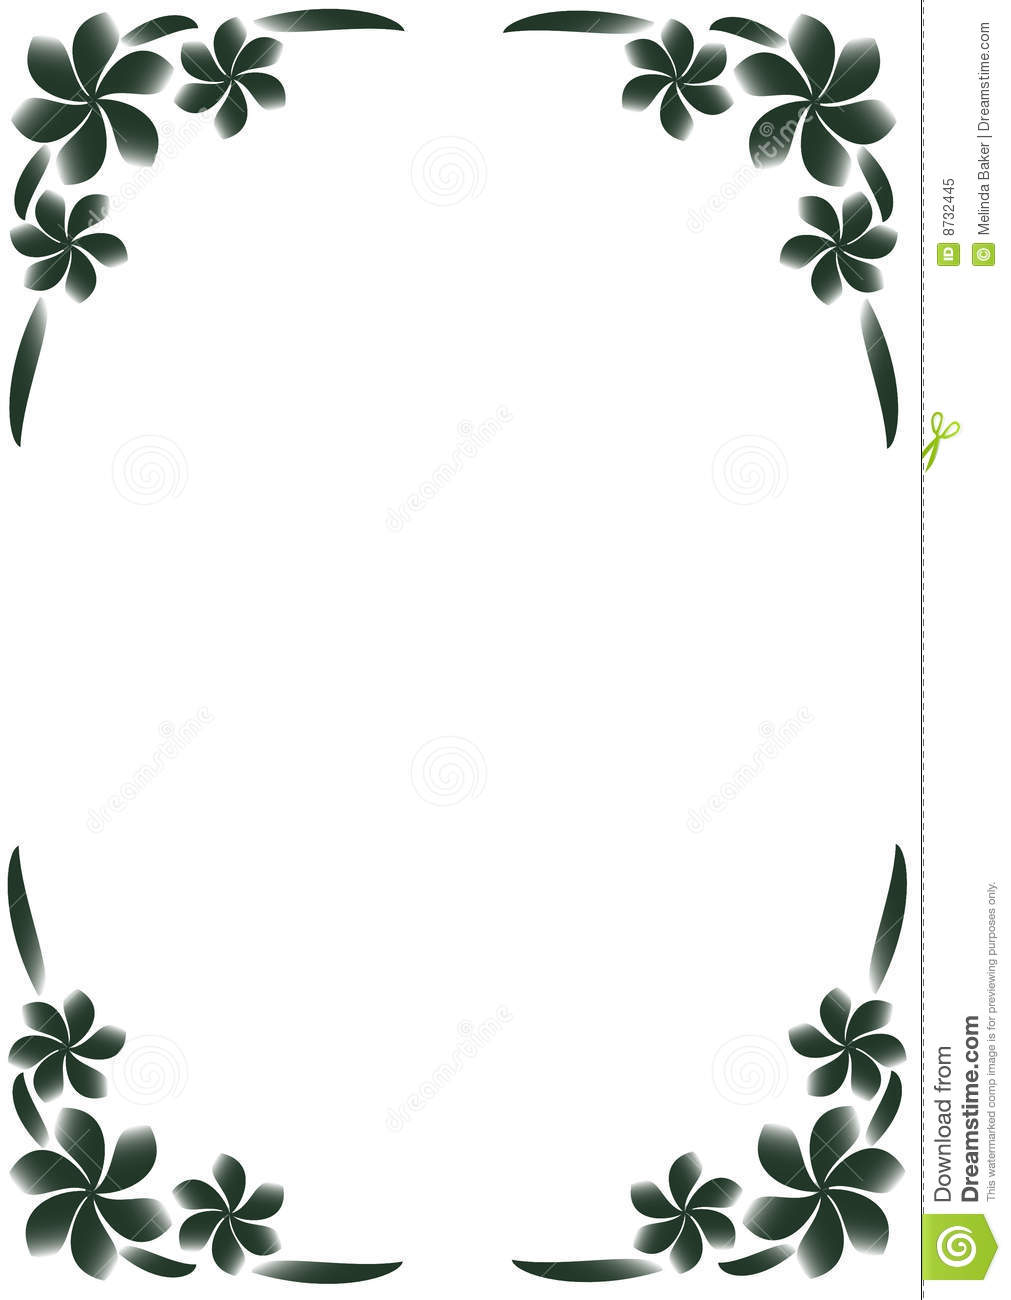 Black & White Floral Border Stock Vector - Illustration of ...